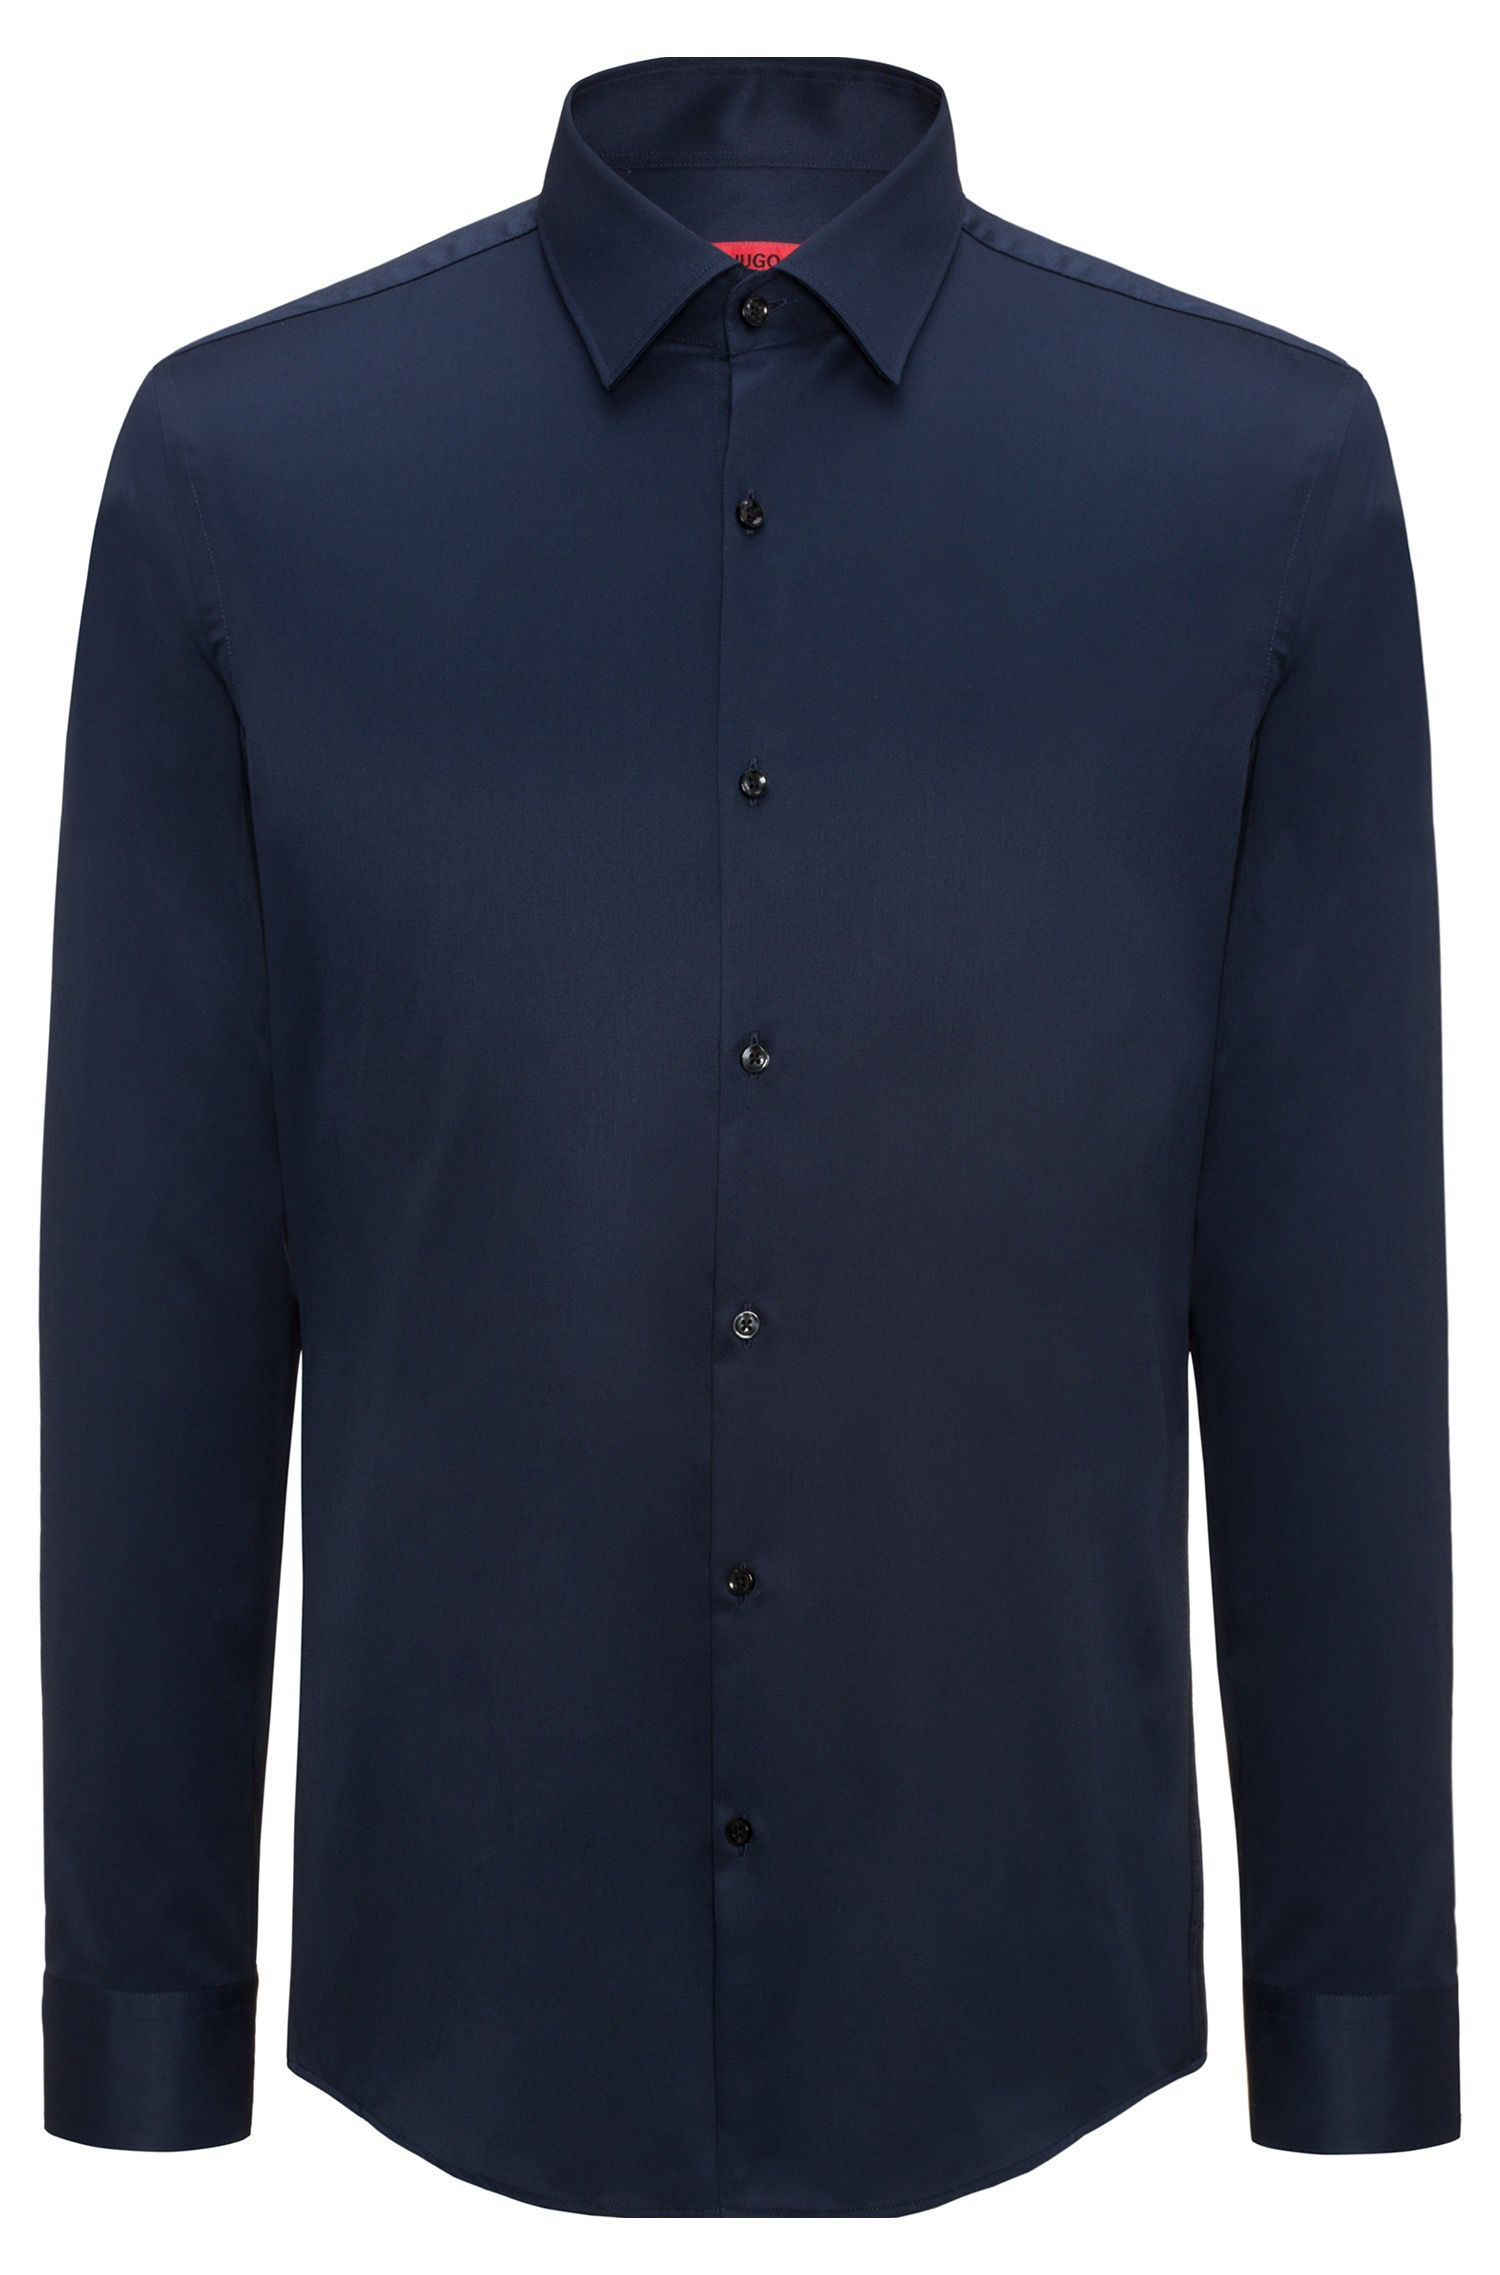 Long-sleeved shirt in cotton twill